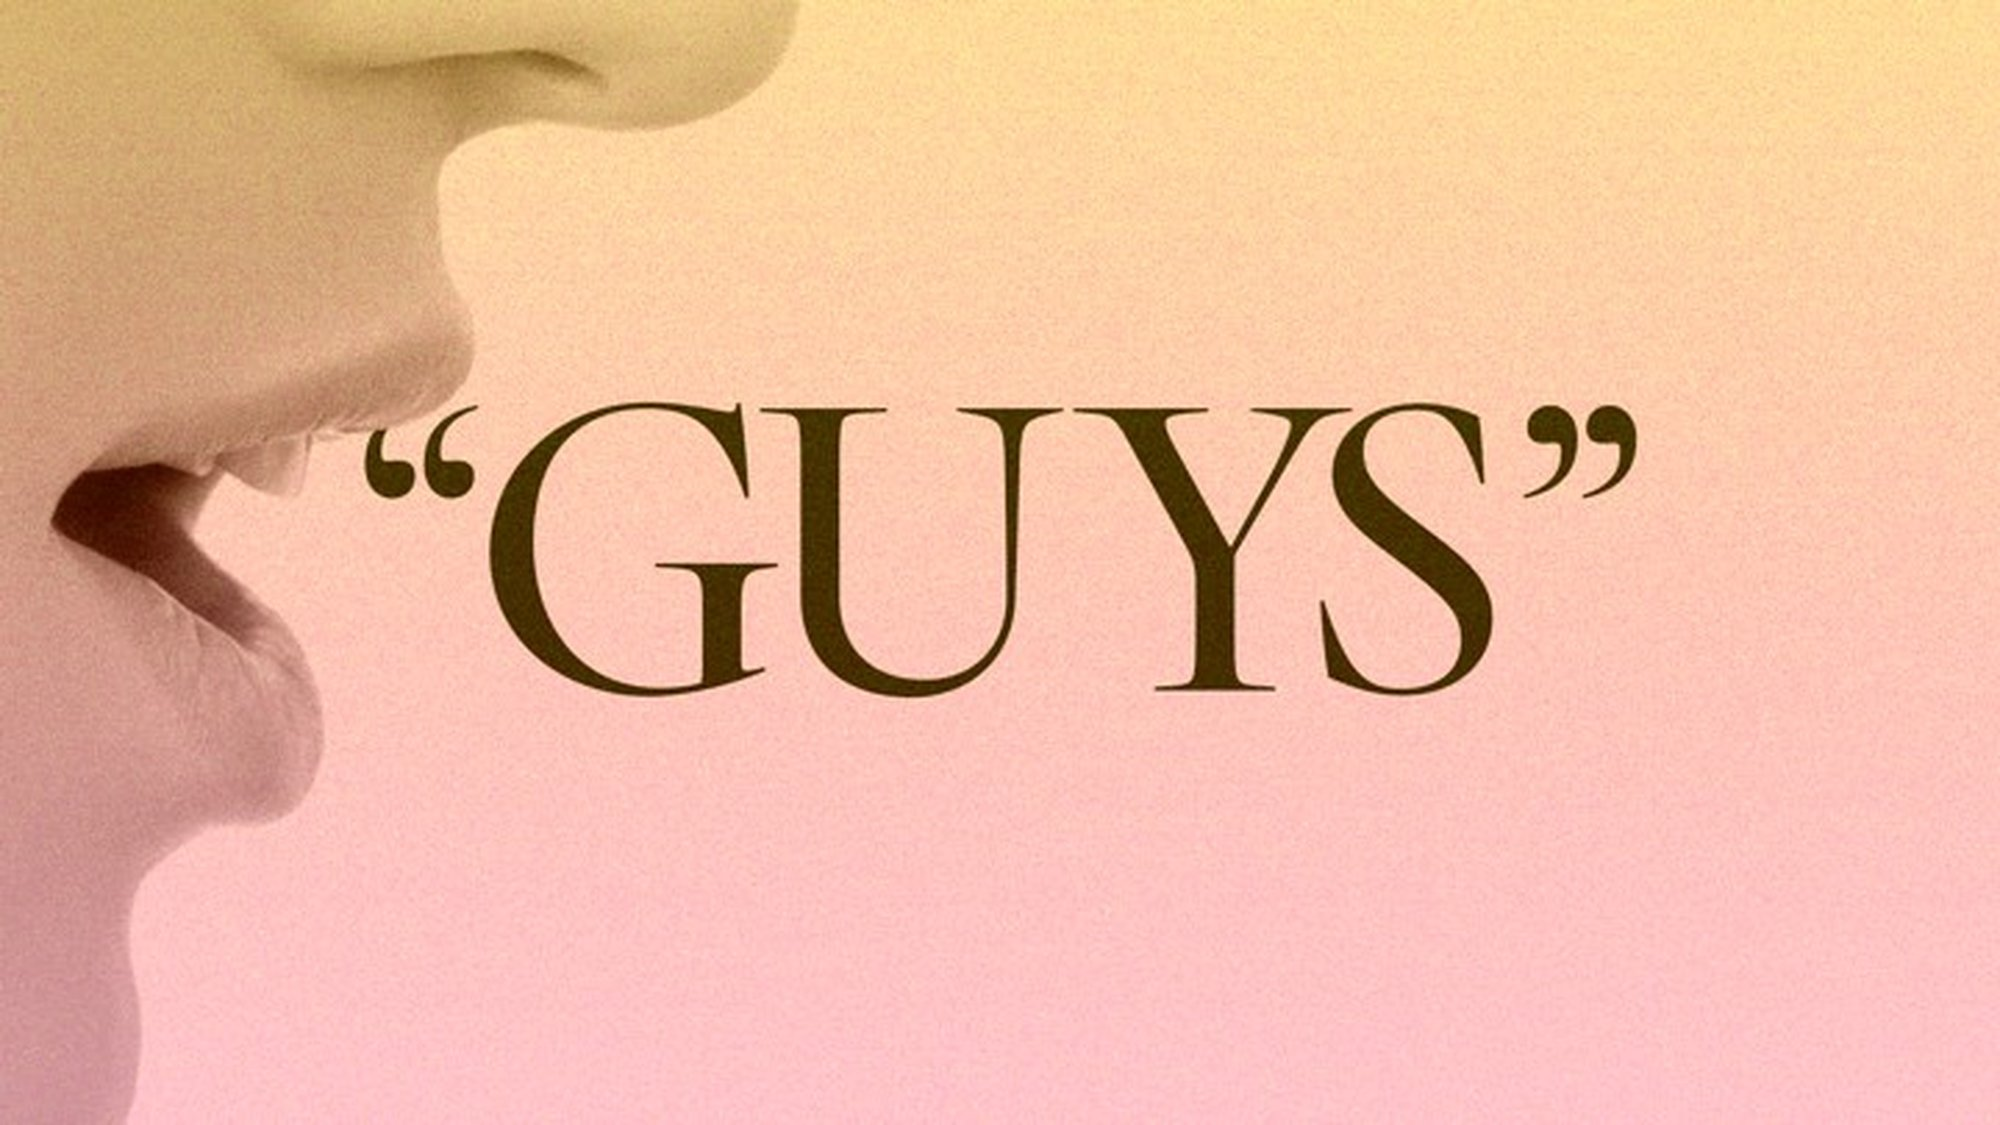 The Problem With 'Hey Guys' - The Atlantic - Pocket